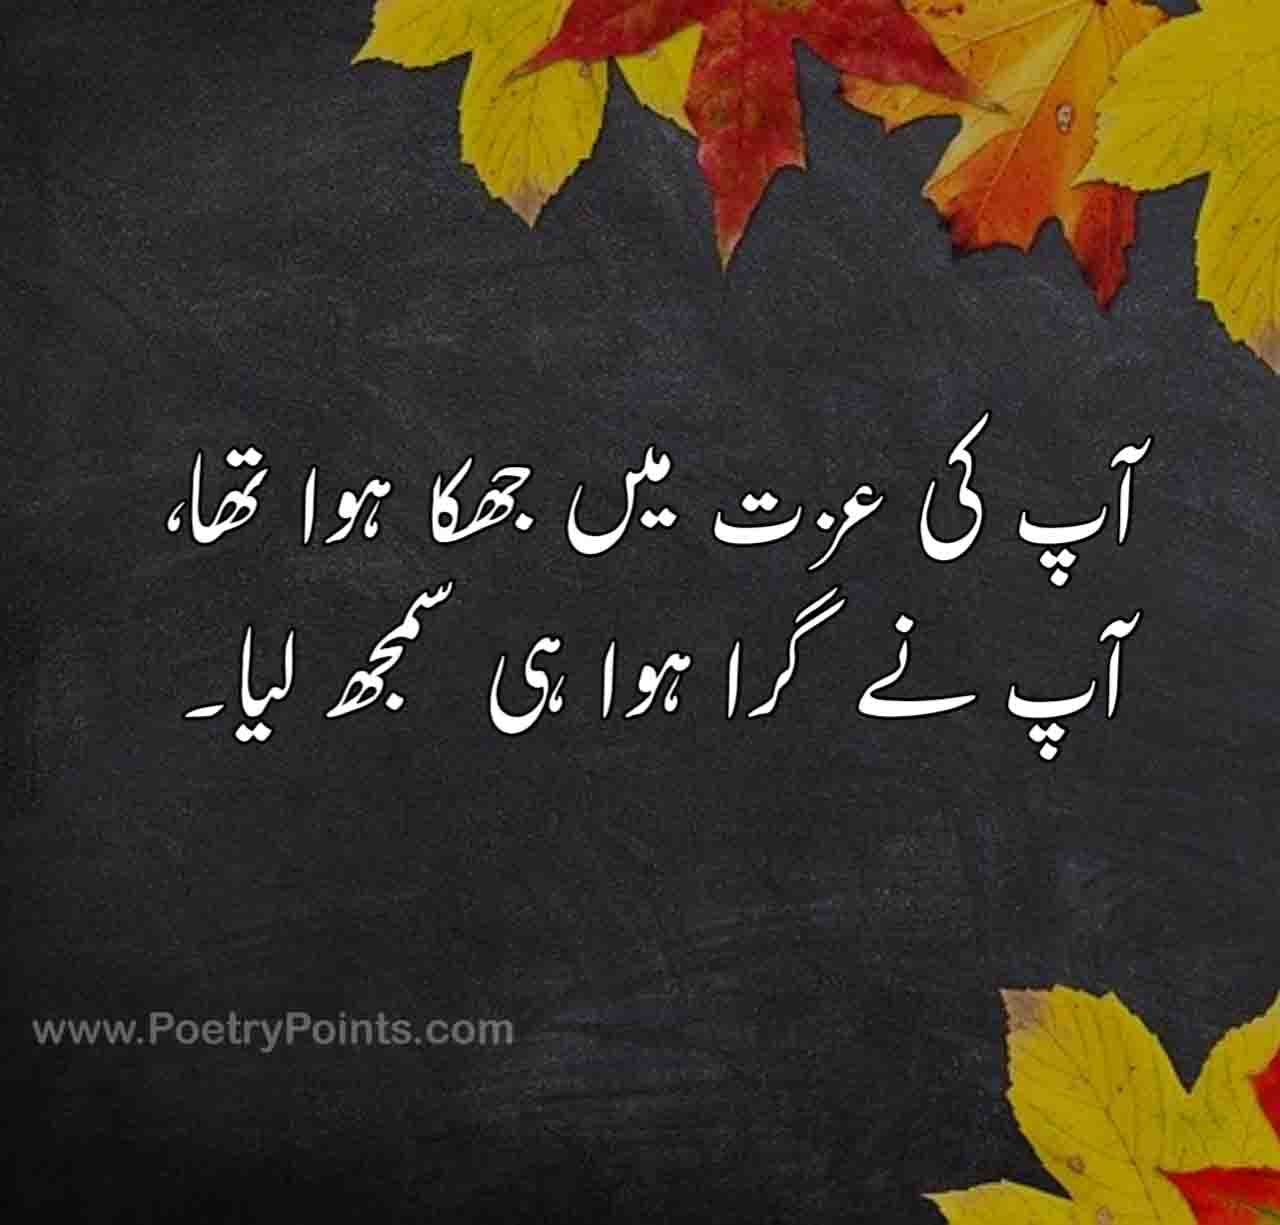 Best Urdu Poetry Image - Dukhi Shayari